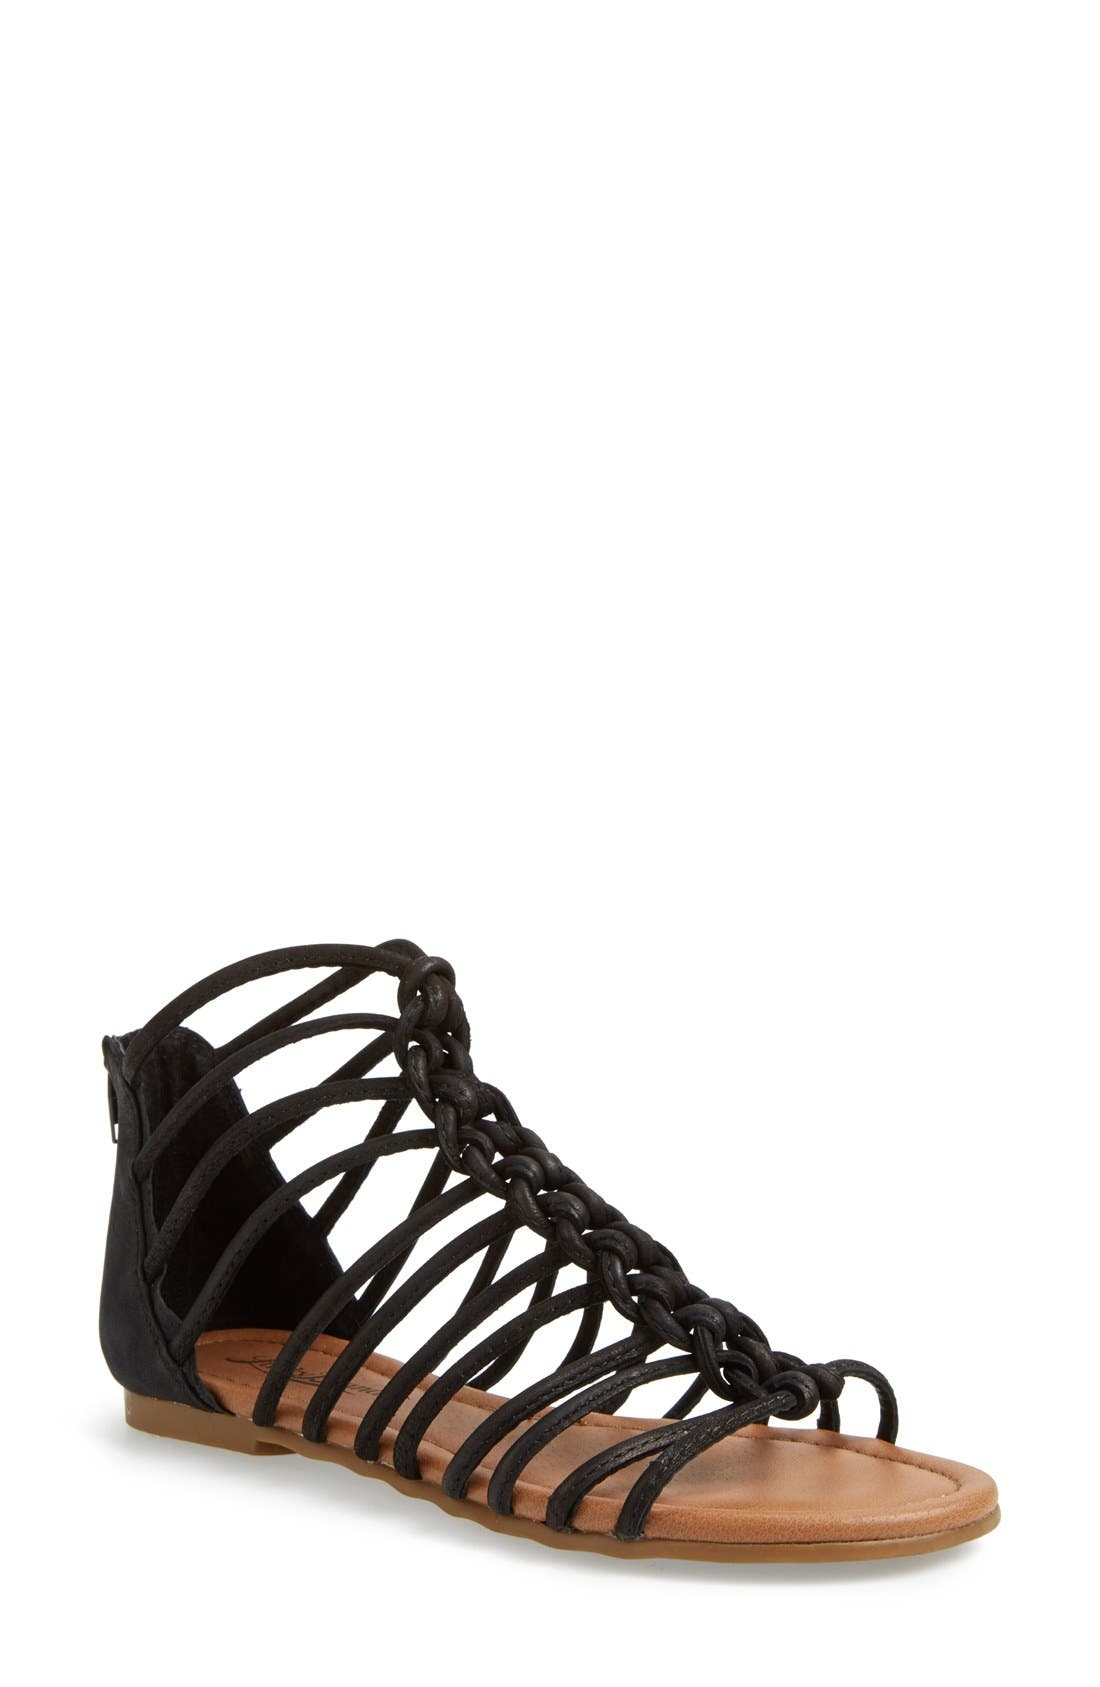 Main Image - Lucky Brand 'Casmett' Leather Caged Sandal (Women)